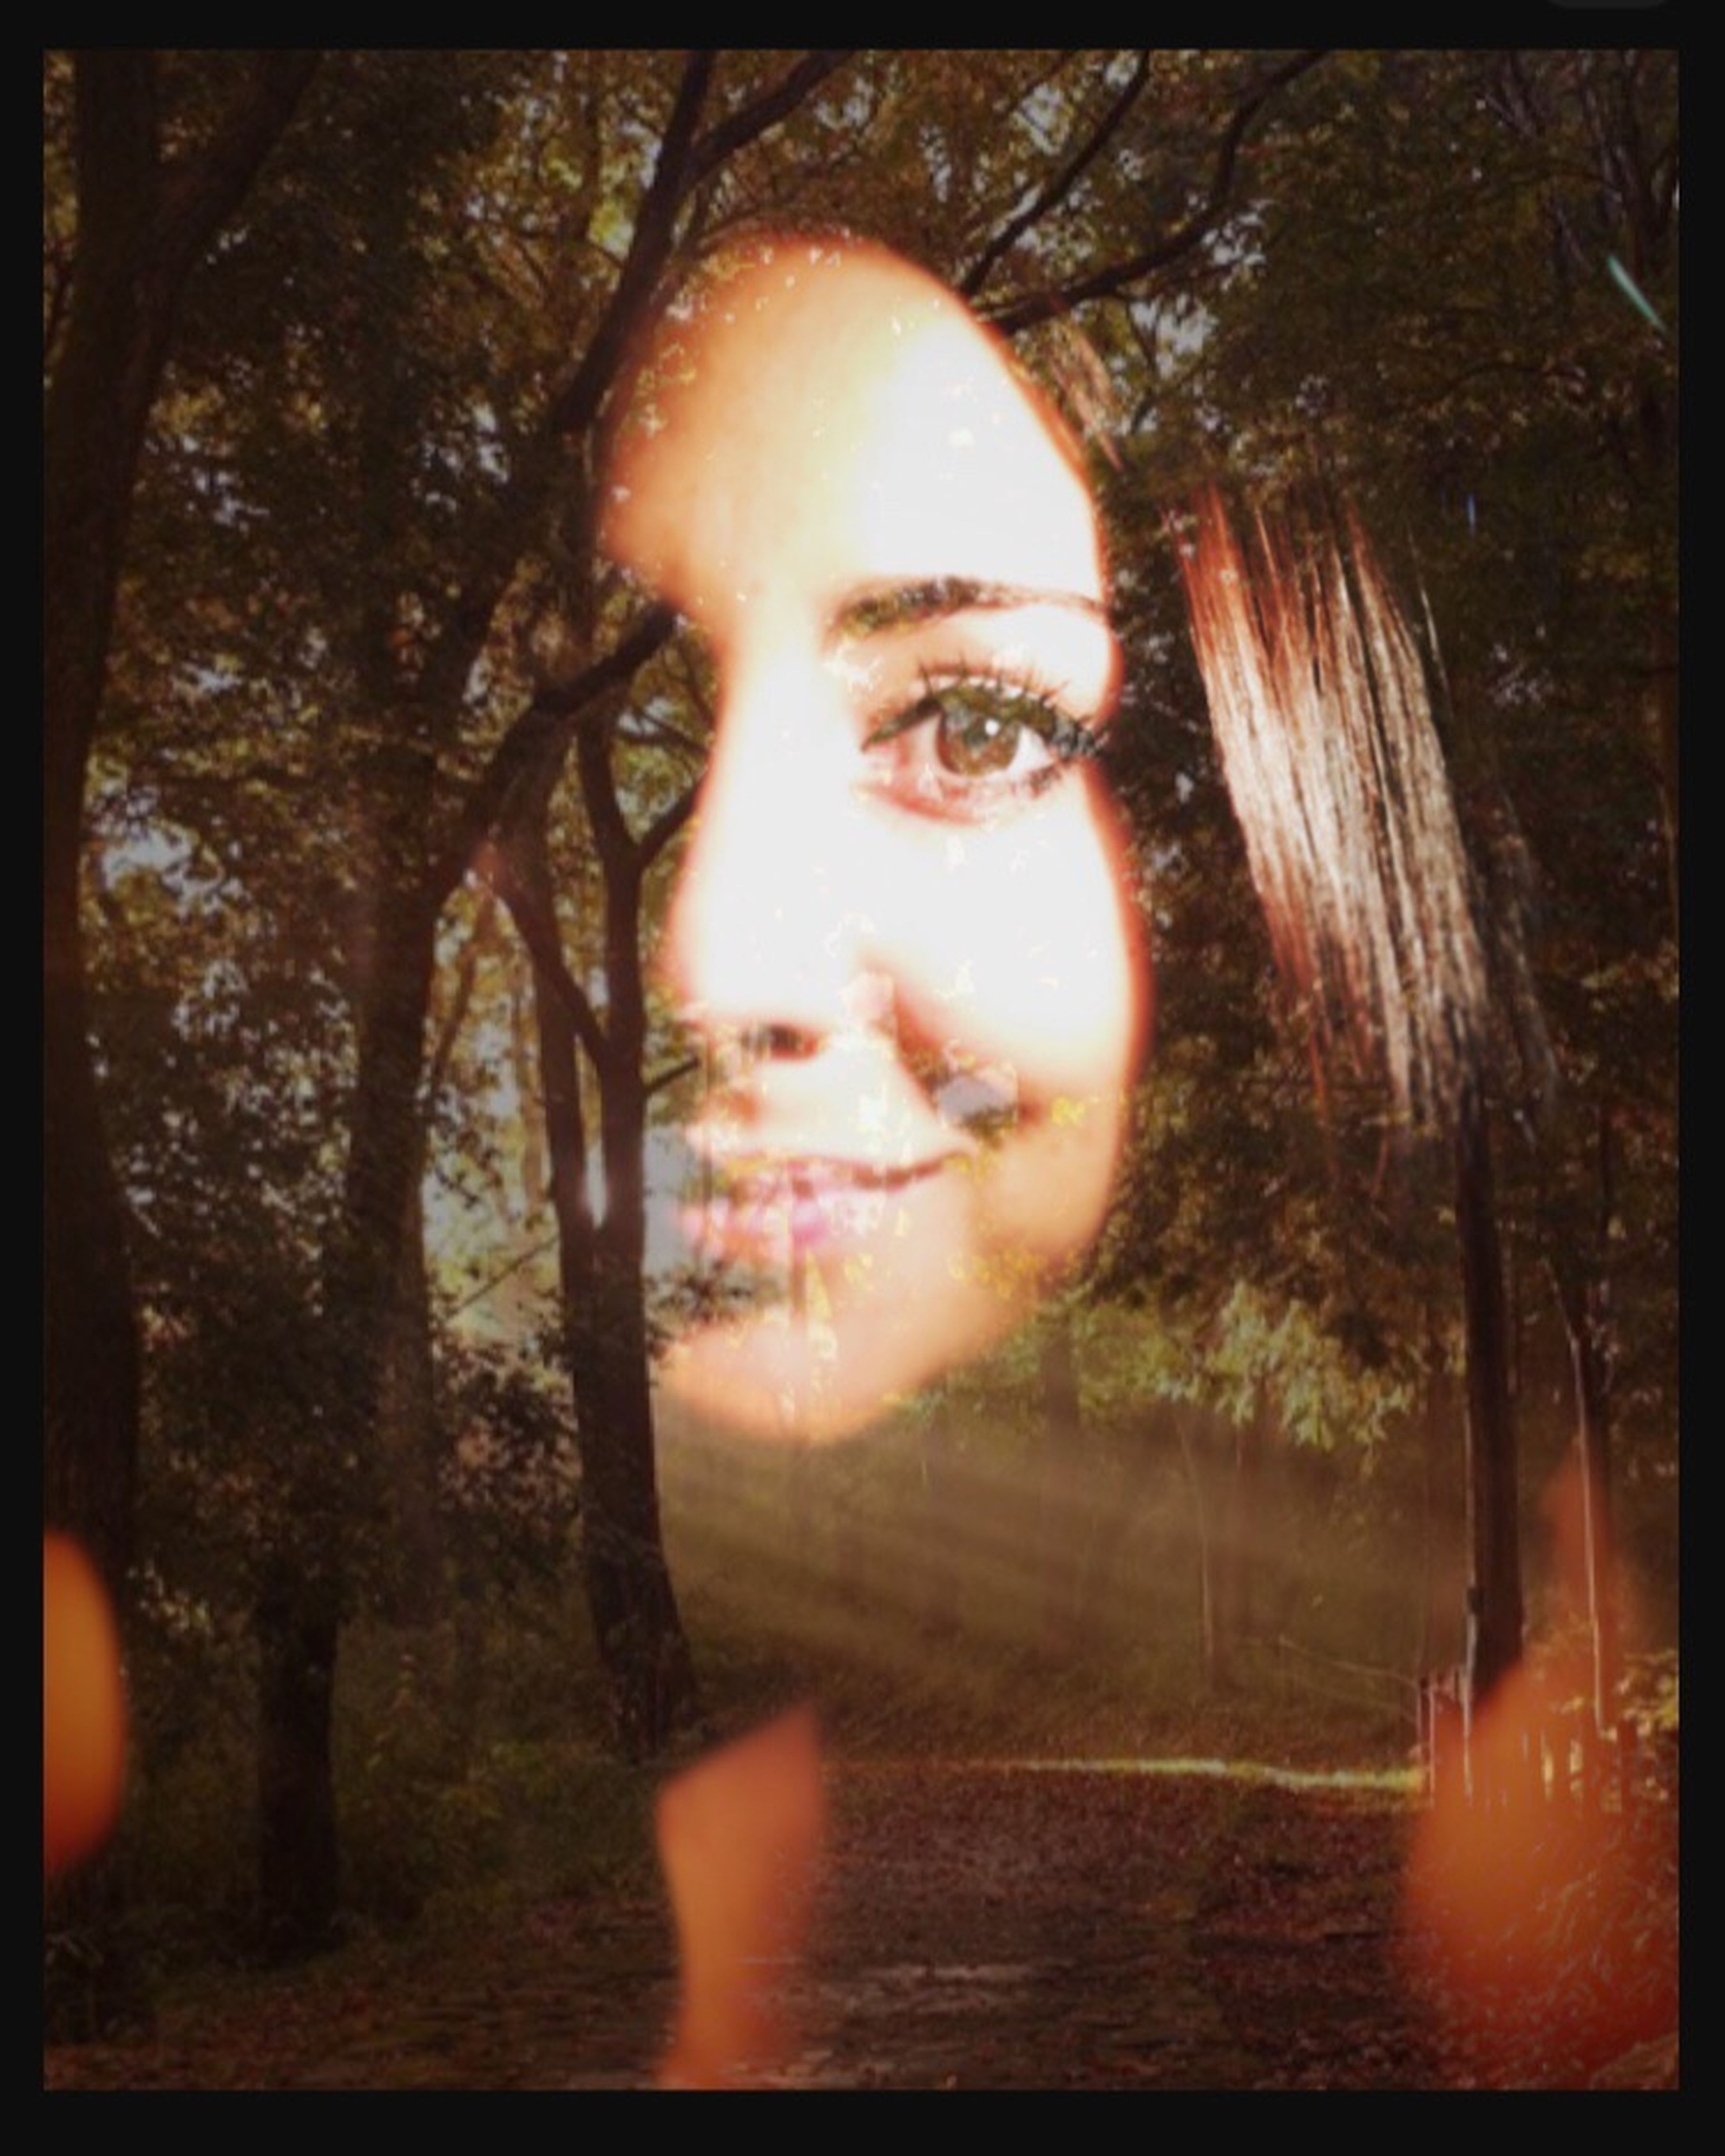 Tanta luz... Double Exposure Cameraplaytime Photographylover Nature Makes Me Smile Selfportrait Beyourself Betterwithasmile